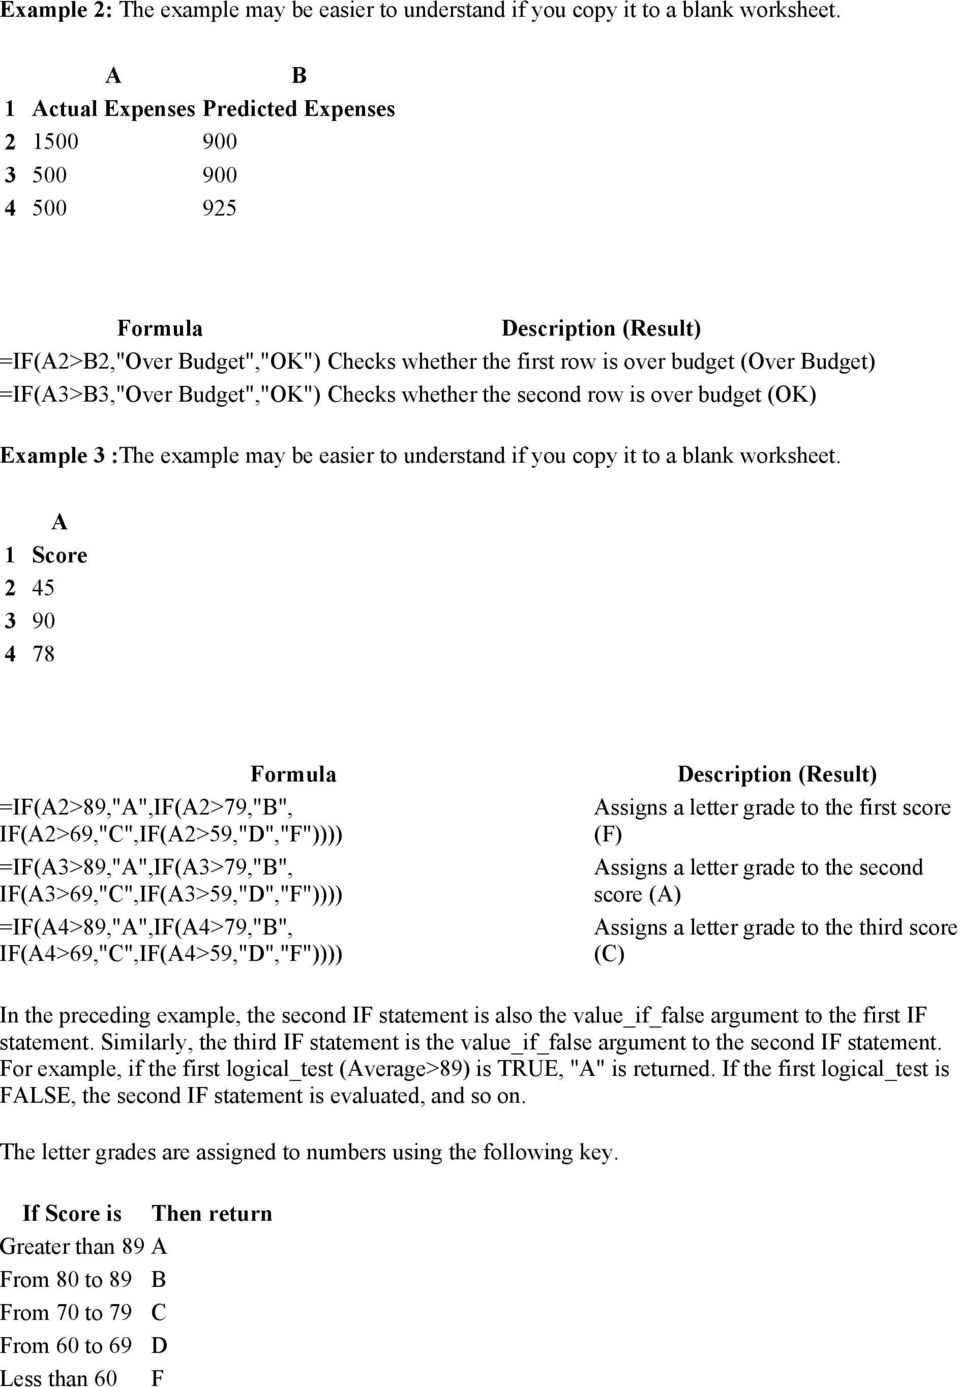 "=IF(A3>B3,""Over Budget"",""OK"") Checks whether the second row is over budget (OK) 3 :The example may be easier to understand if you copy it to a blank worksheet."